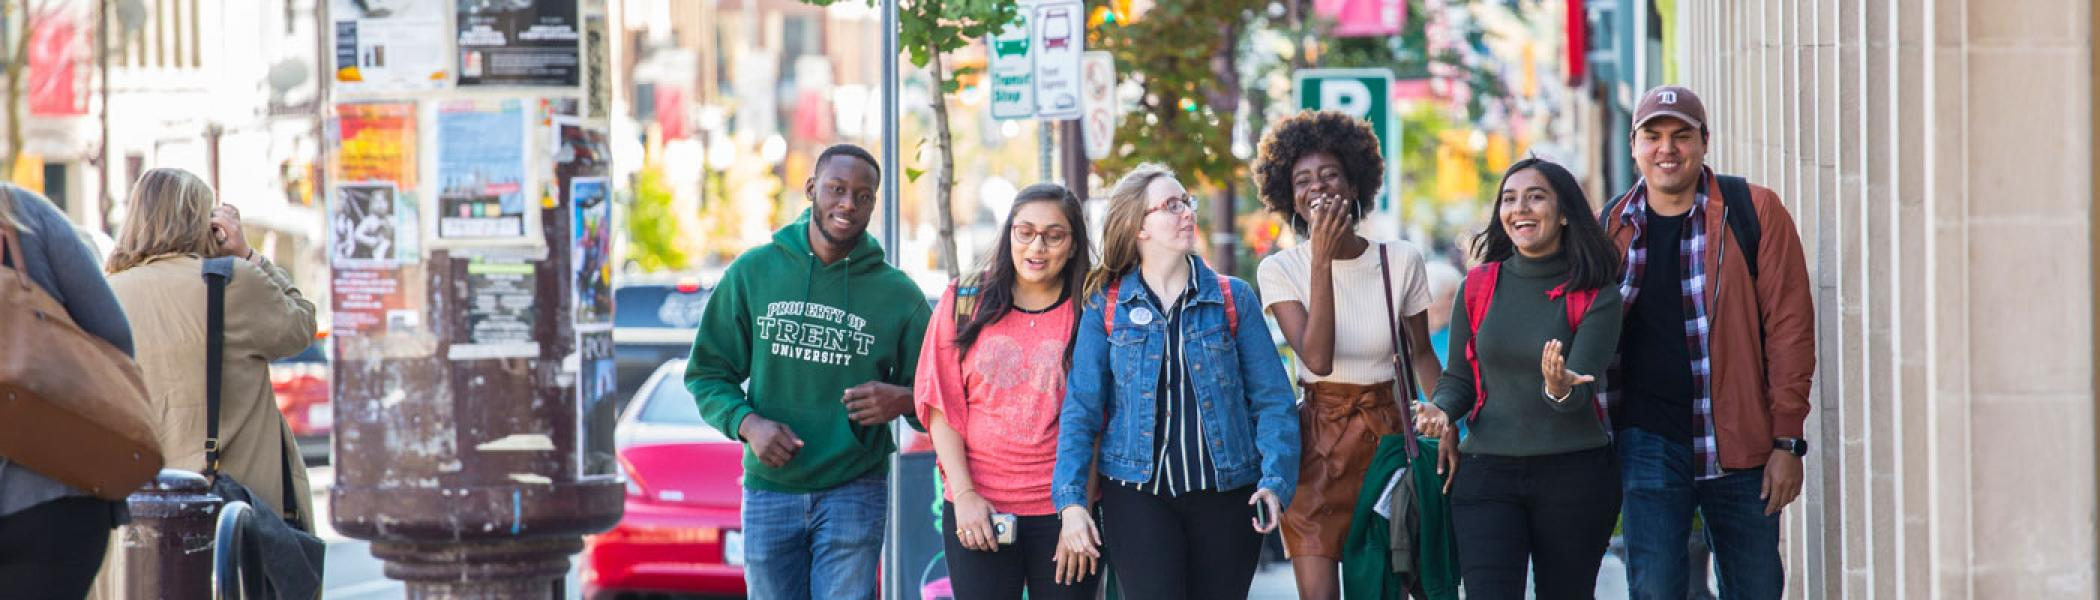 A group of six students walking downtown.